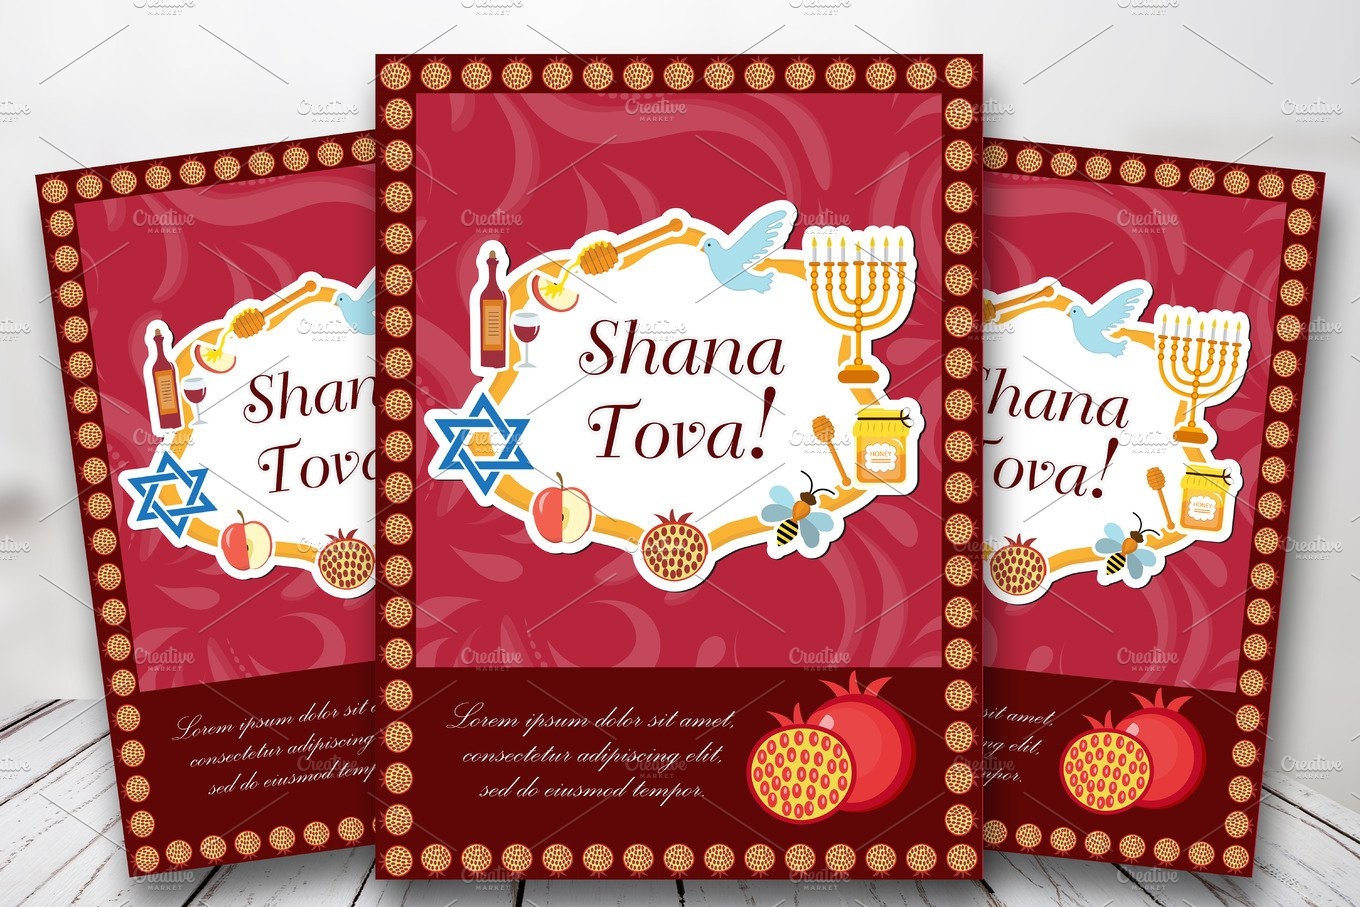 Rosh hashanah poster flyer invitation greeting card shana tova rosh hashanah poster flyer invitation greeting card shana tova is a template kristyandbryce Choice Image